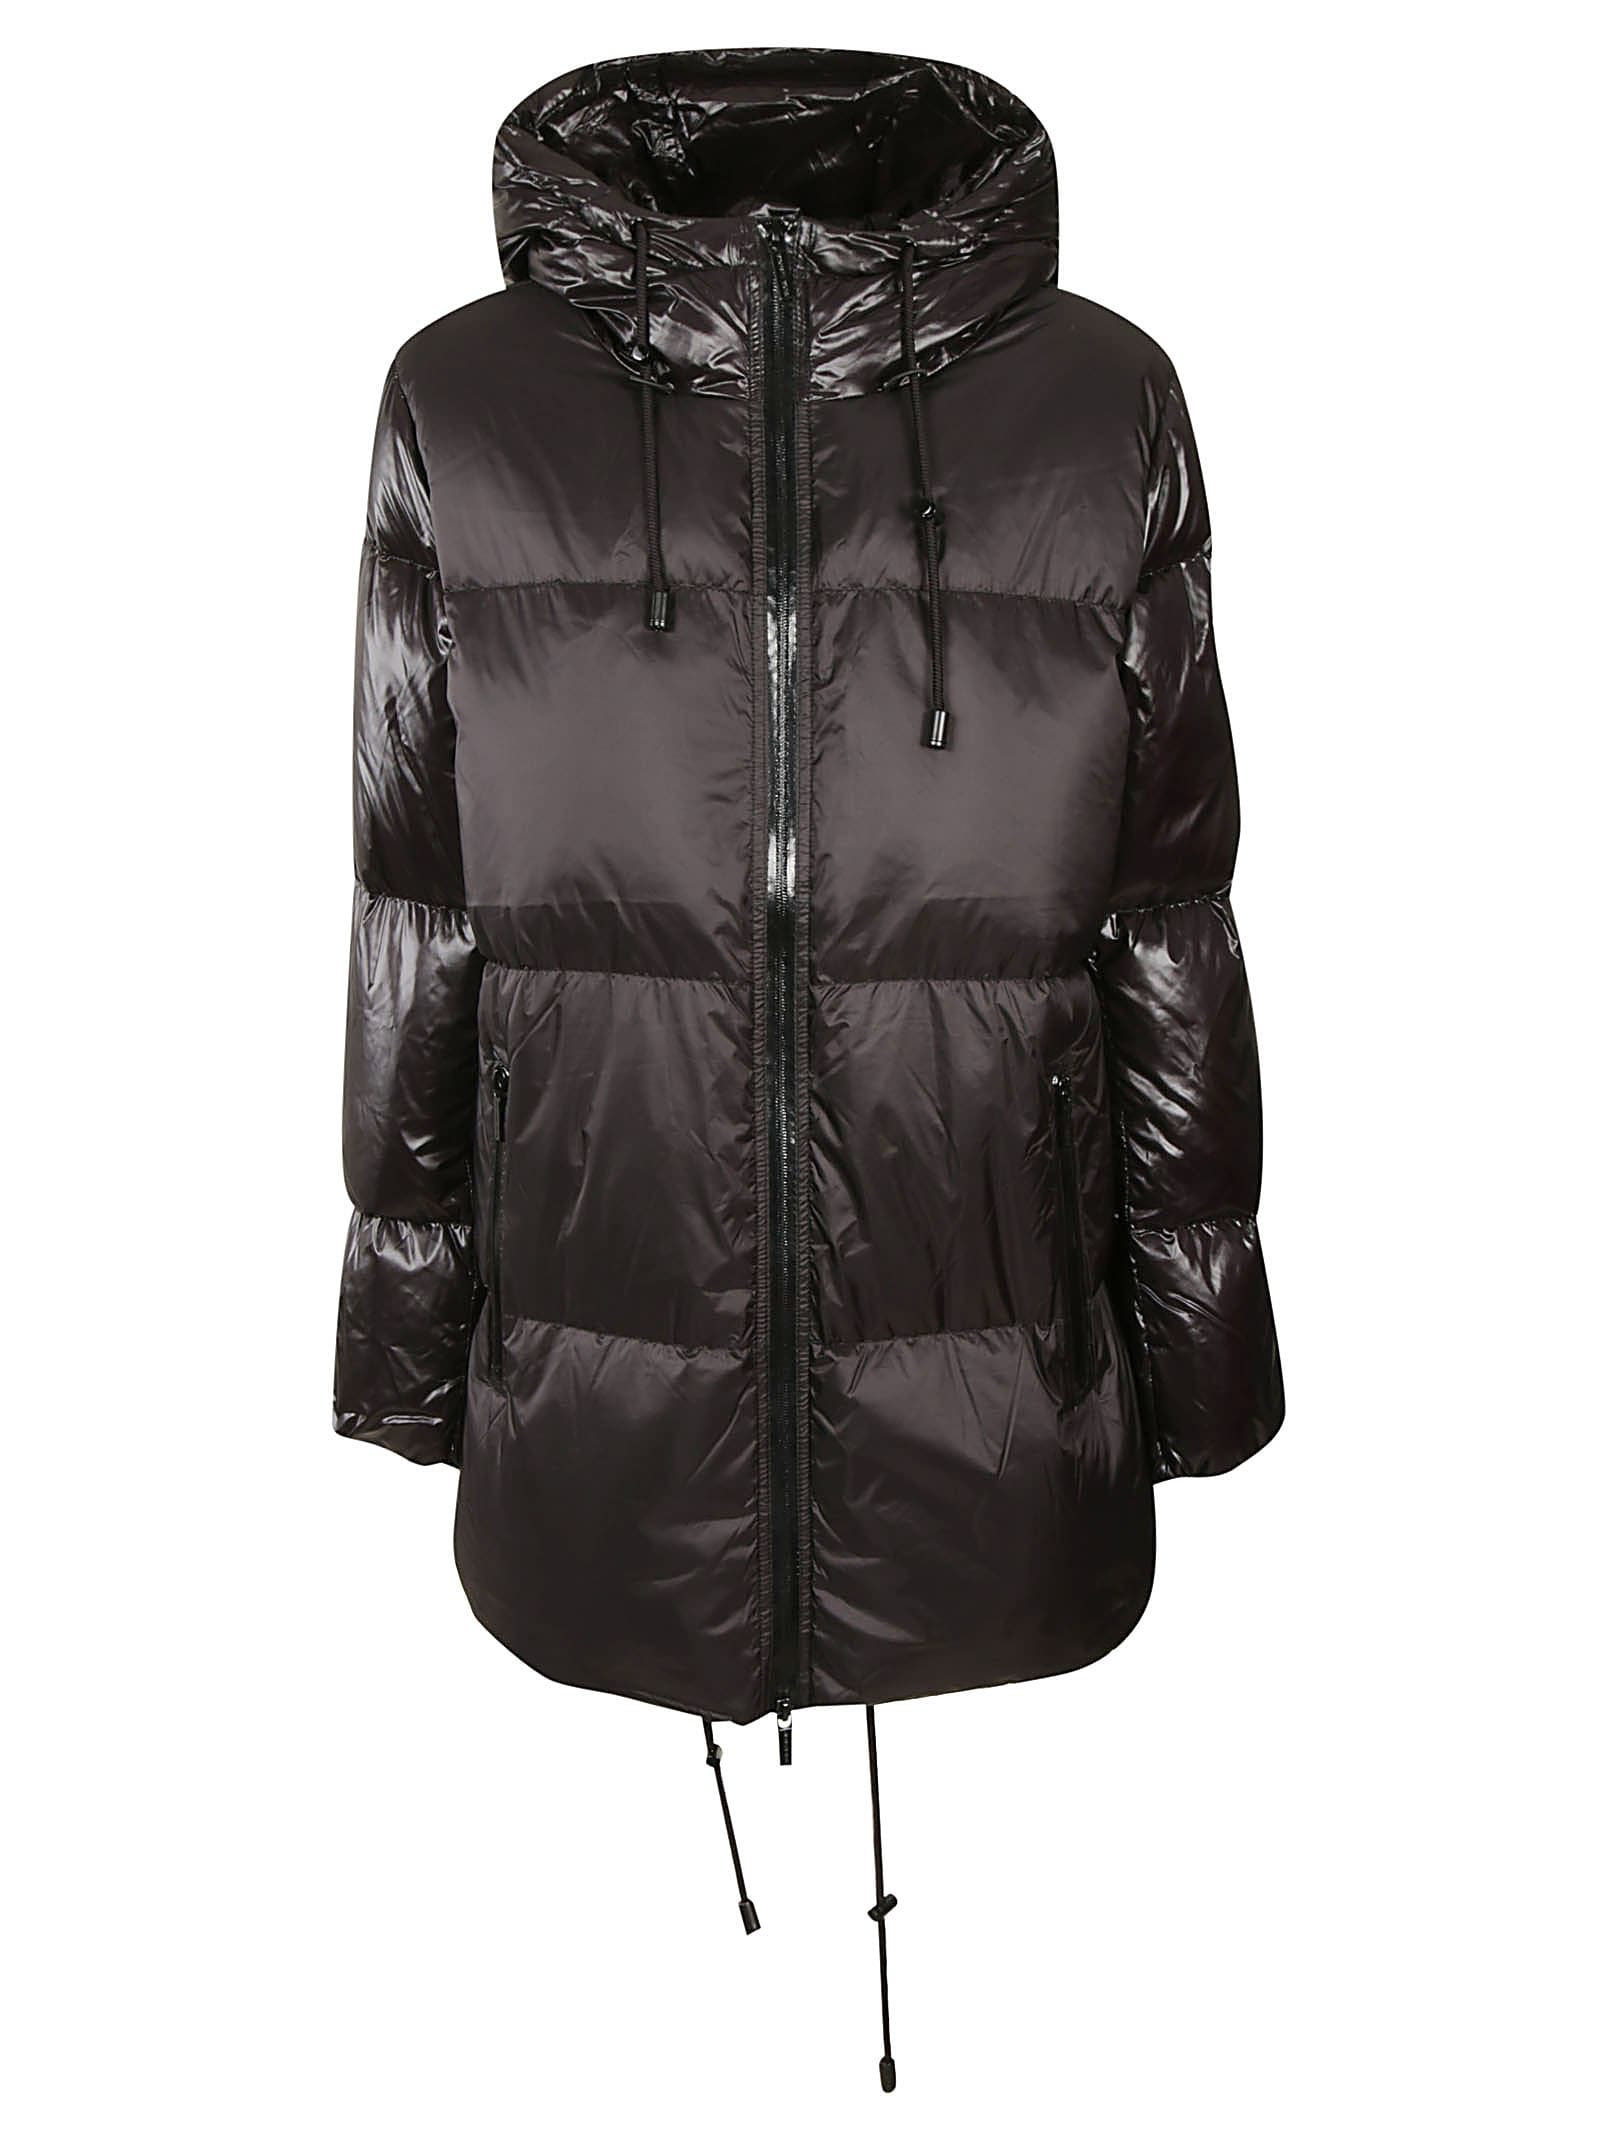 Michael Kors Zipped Padded Jacket